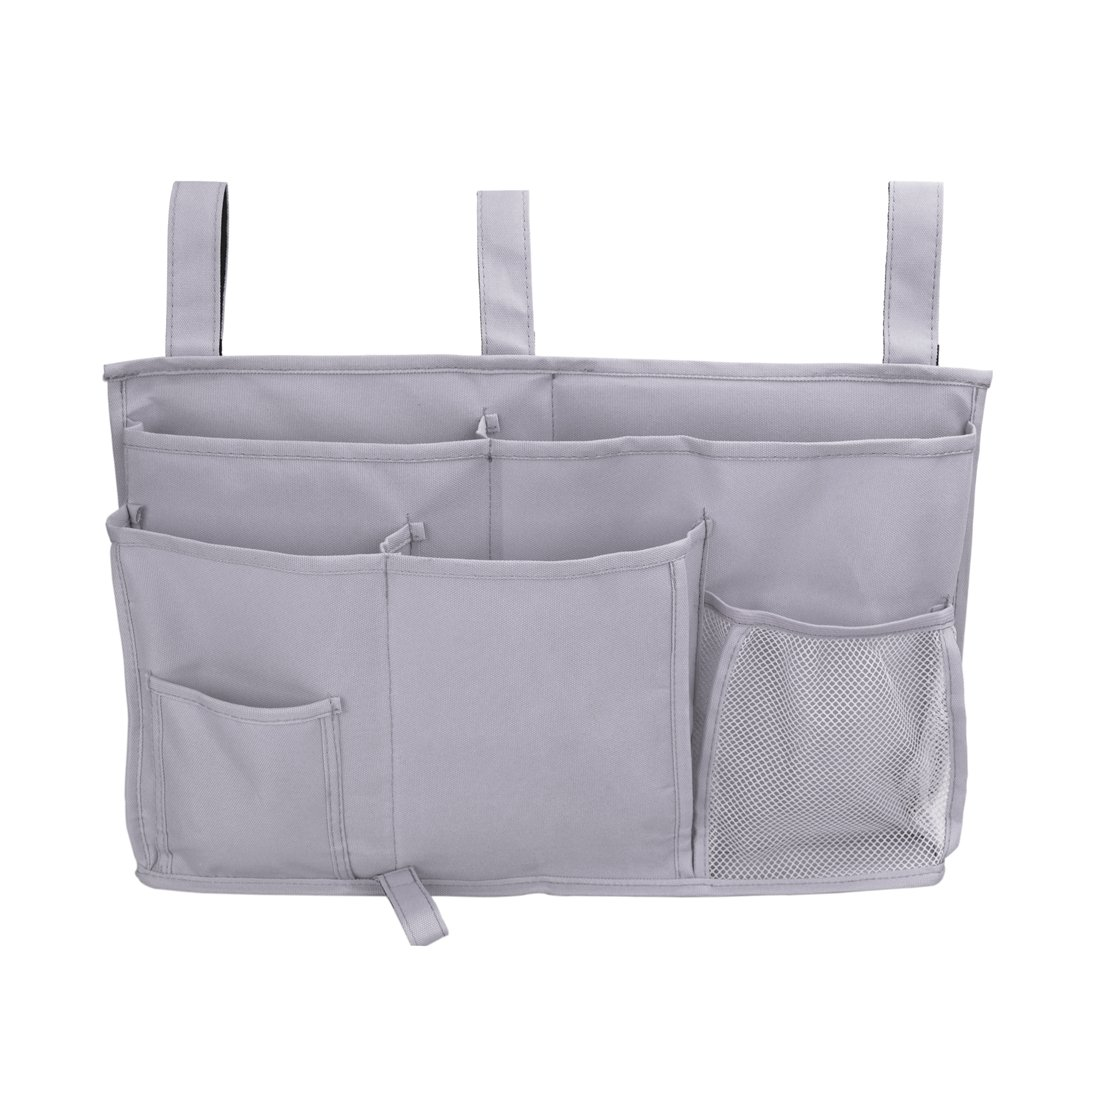 Jiyaru Bedside Caddy Hanging Organizer 8 Pockets Storage Bag for Bunk Dorm Rooms Hospital Bed Rails Gray